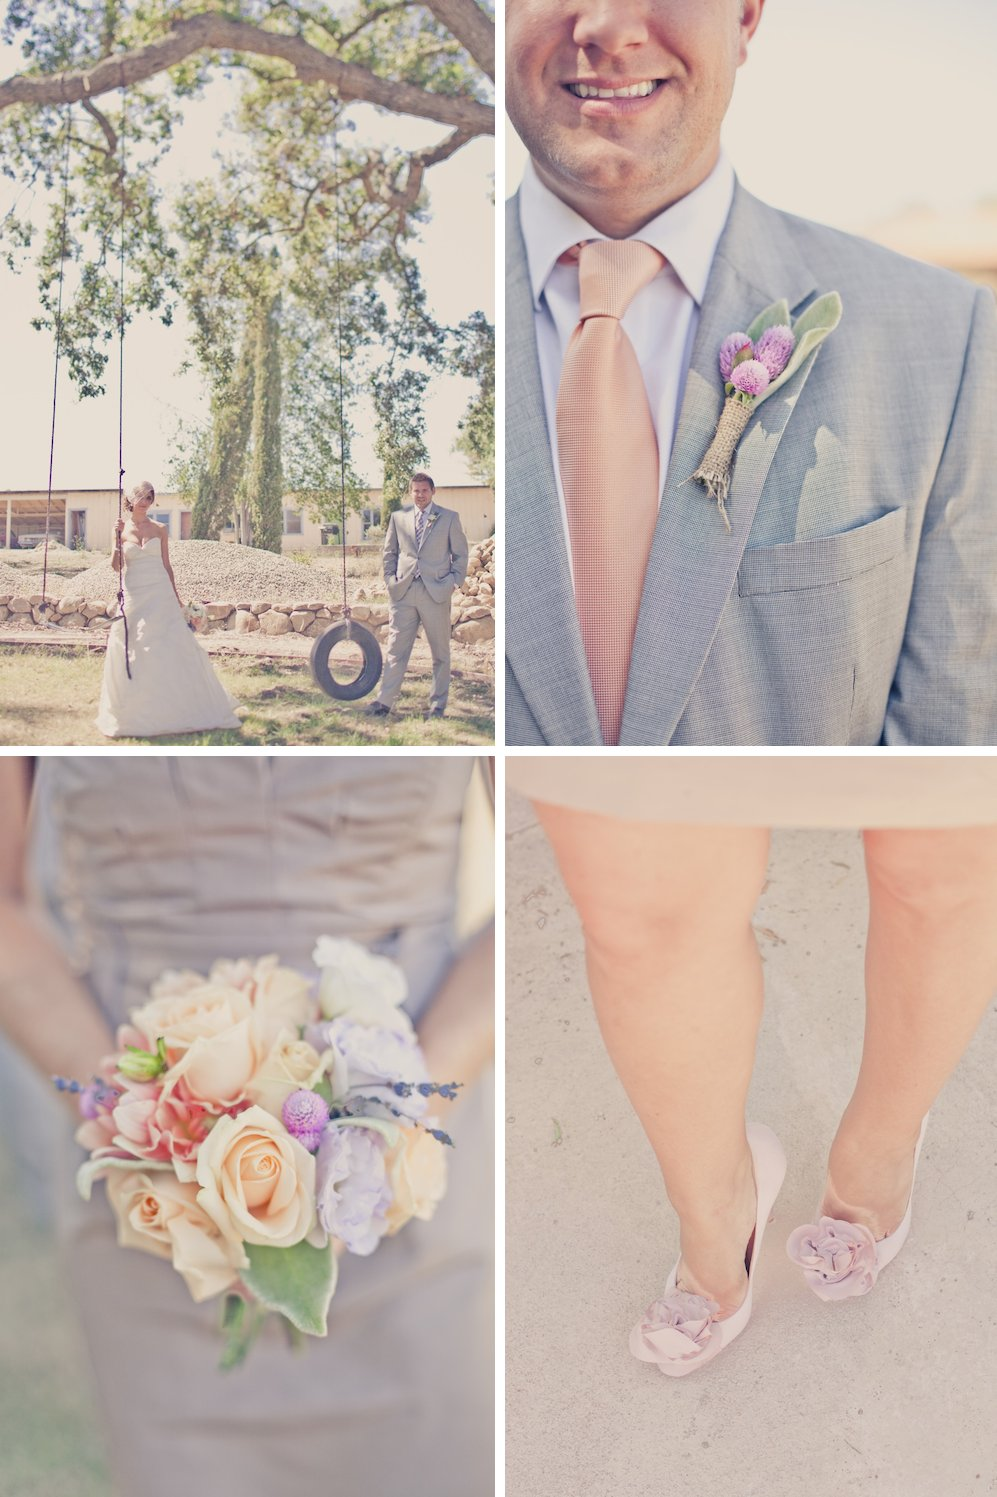 Wine-country-wedding-bridesmaid-bouquet-style-boutonnieres.full